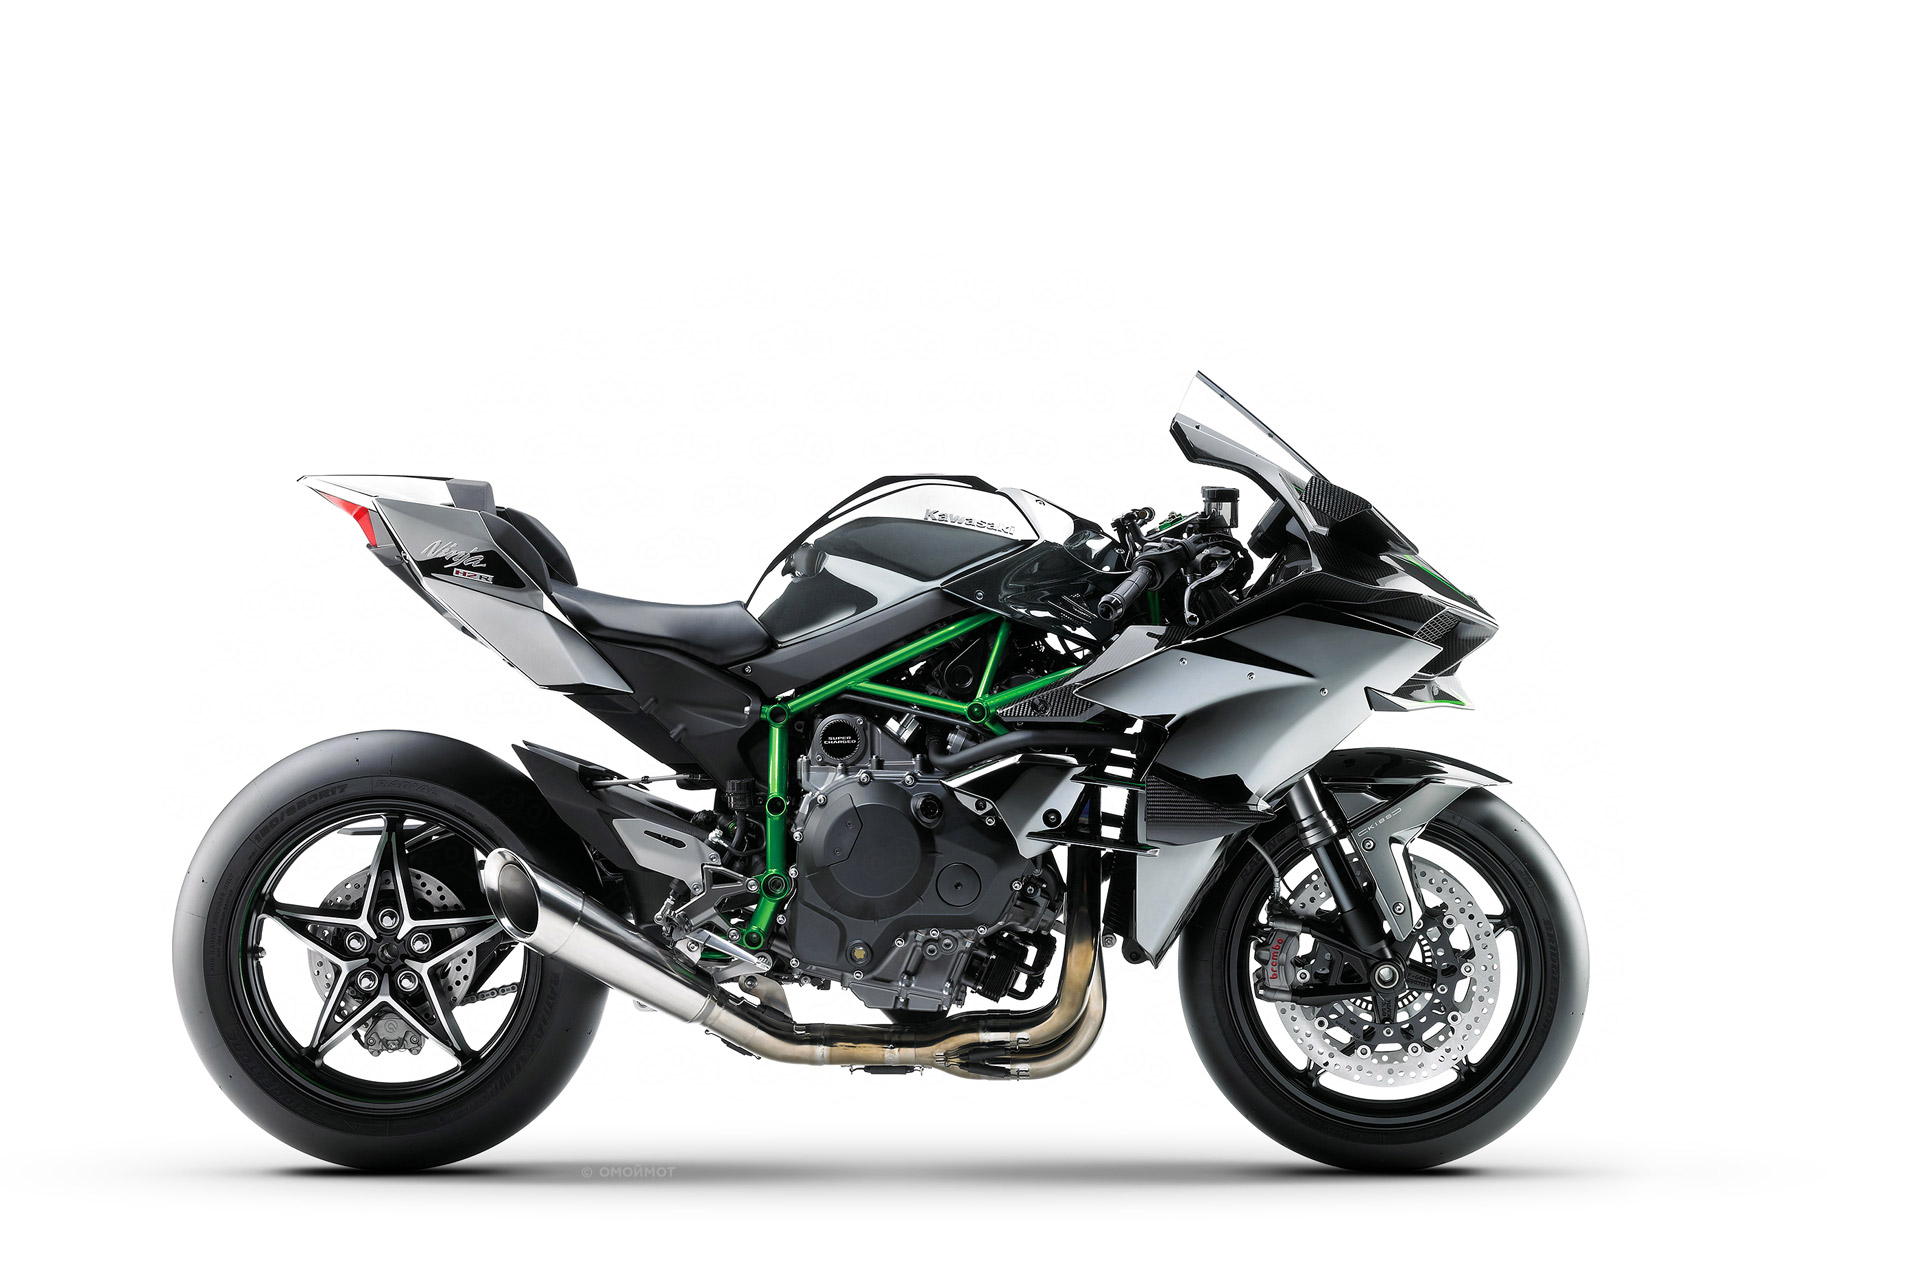 kawasaki ninja h2r 2019. Black Bedroom Furniture Sets. Home Design Ideas